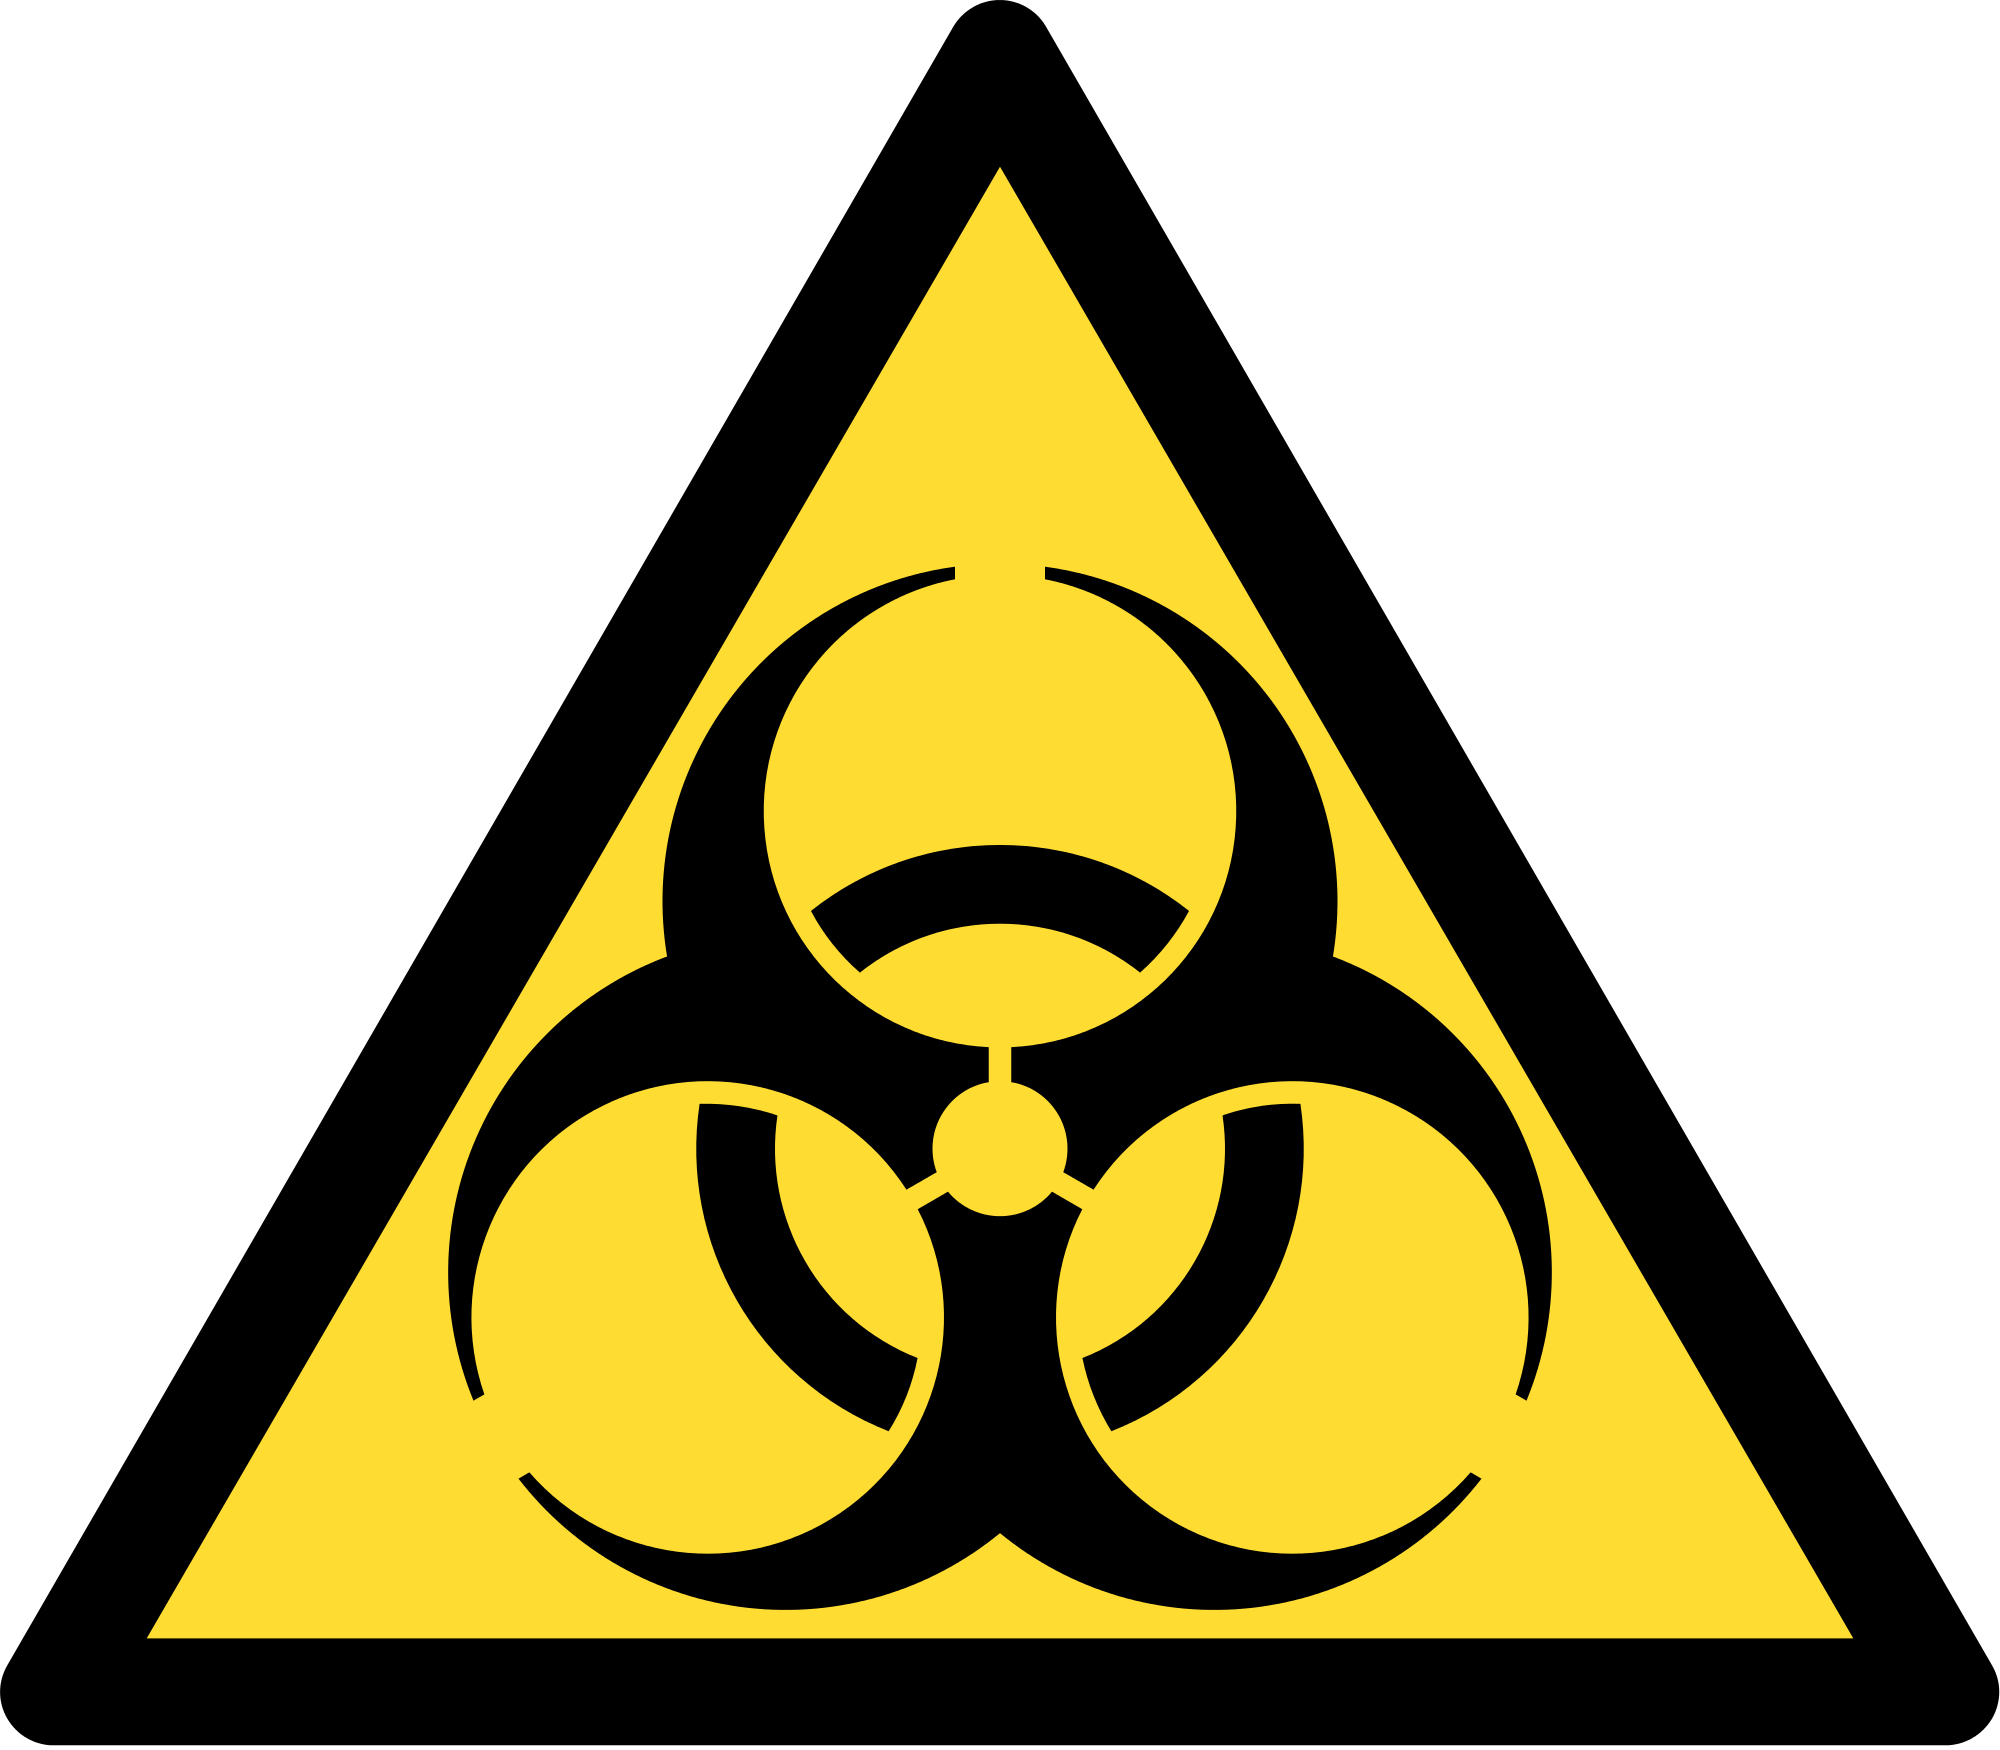 Biohazard transparent triangle. Gray technical llc